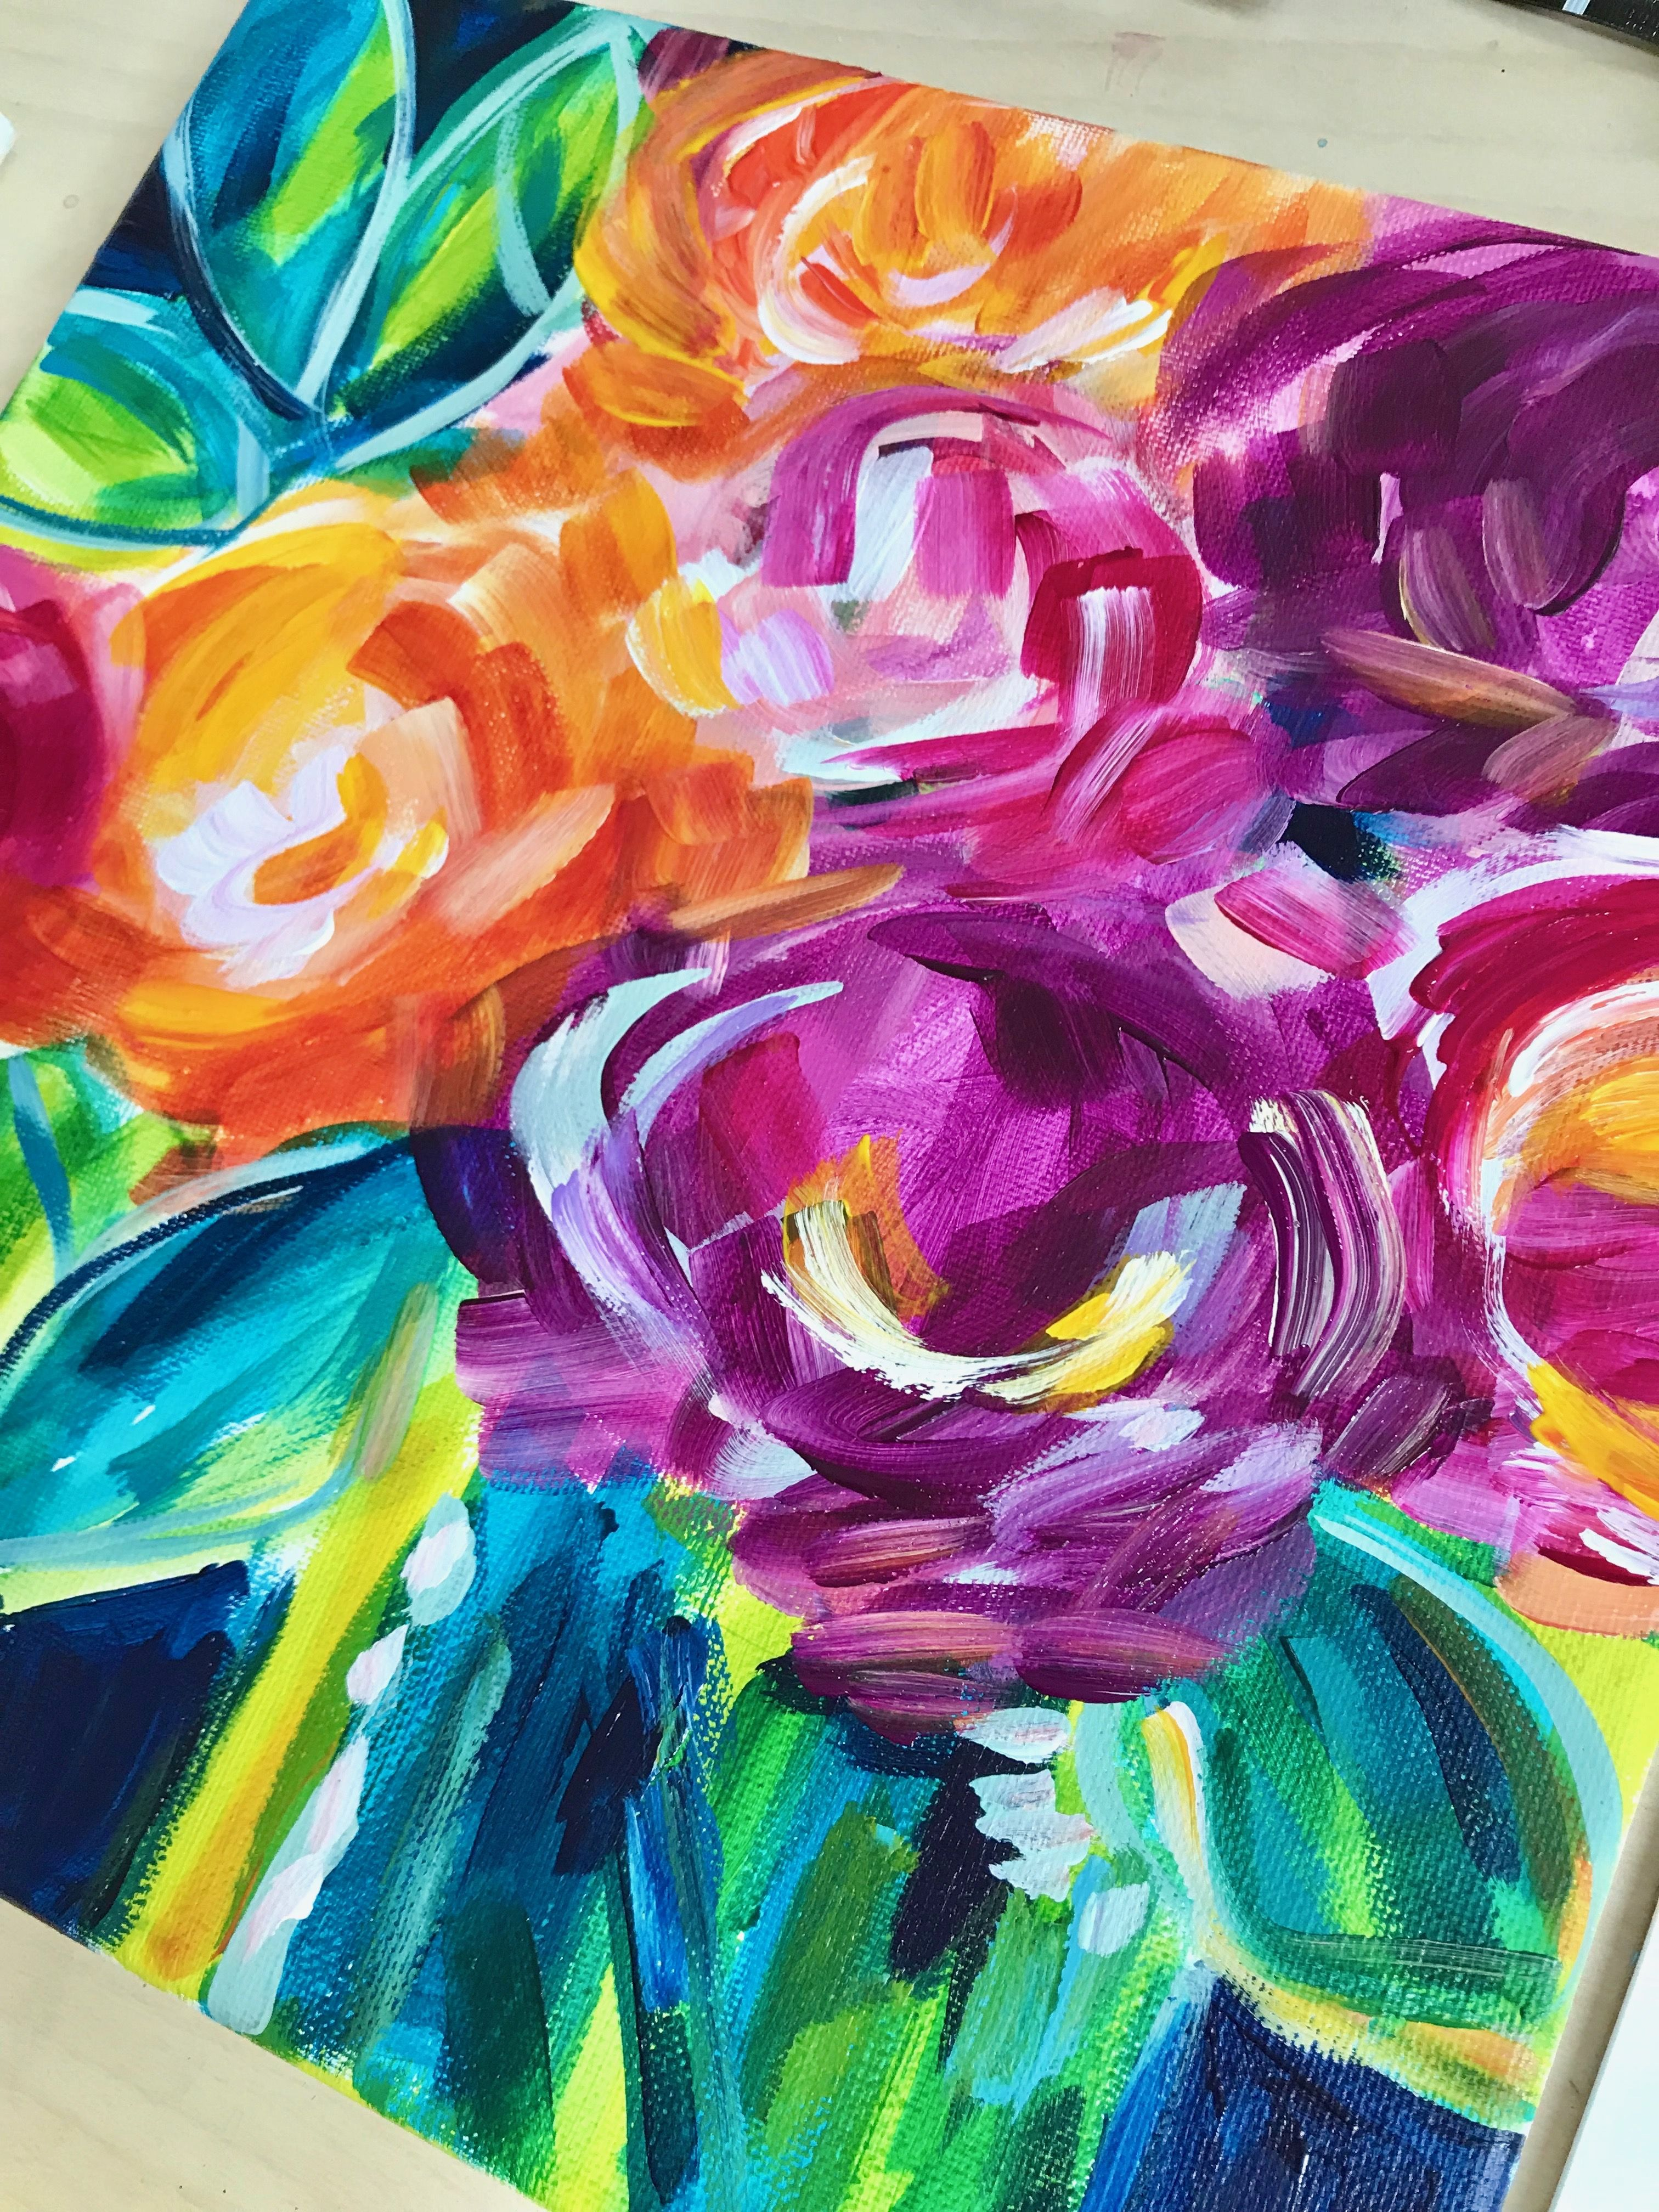 Learn How To Paint Loose Expressive Abstract Flowers In This New